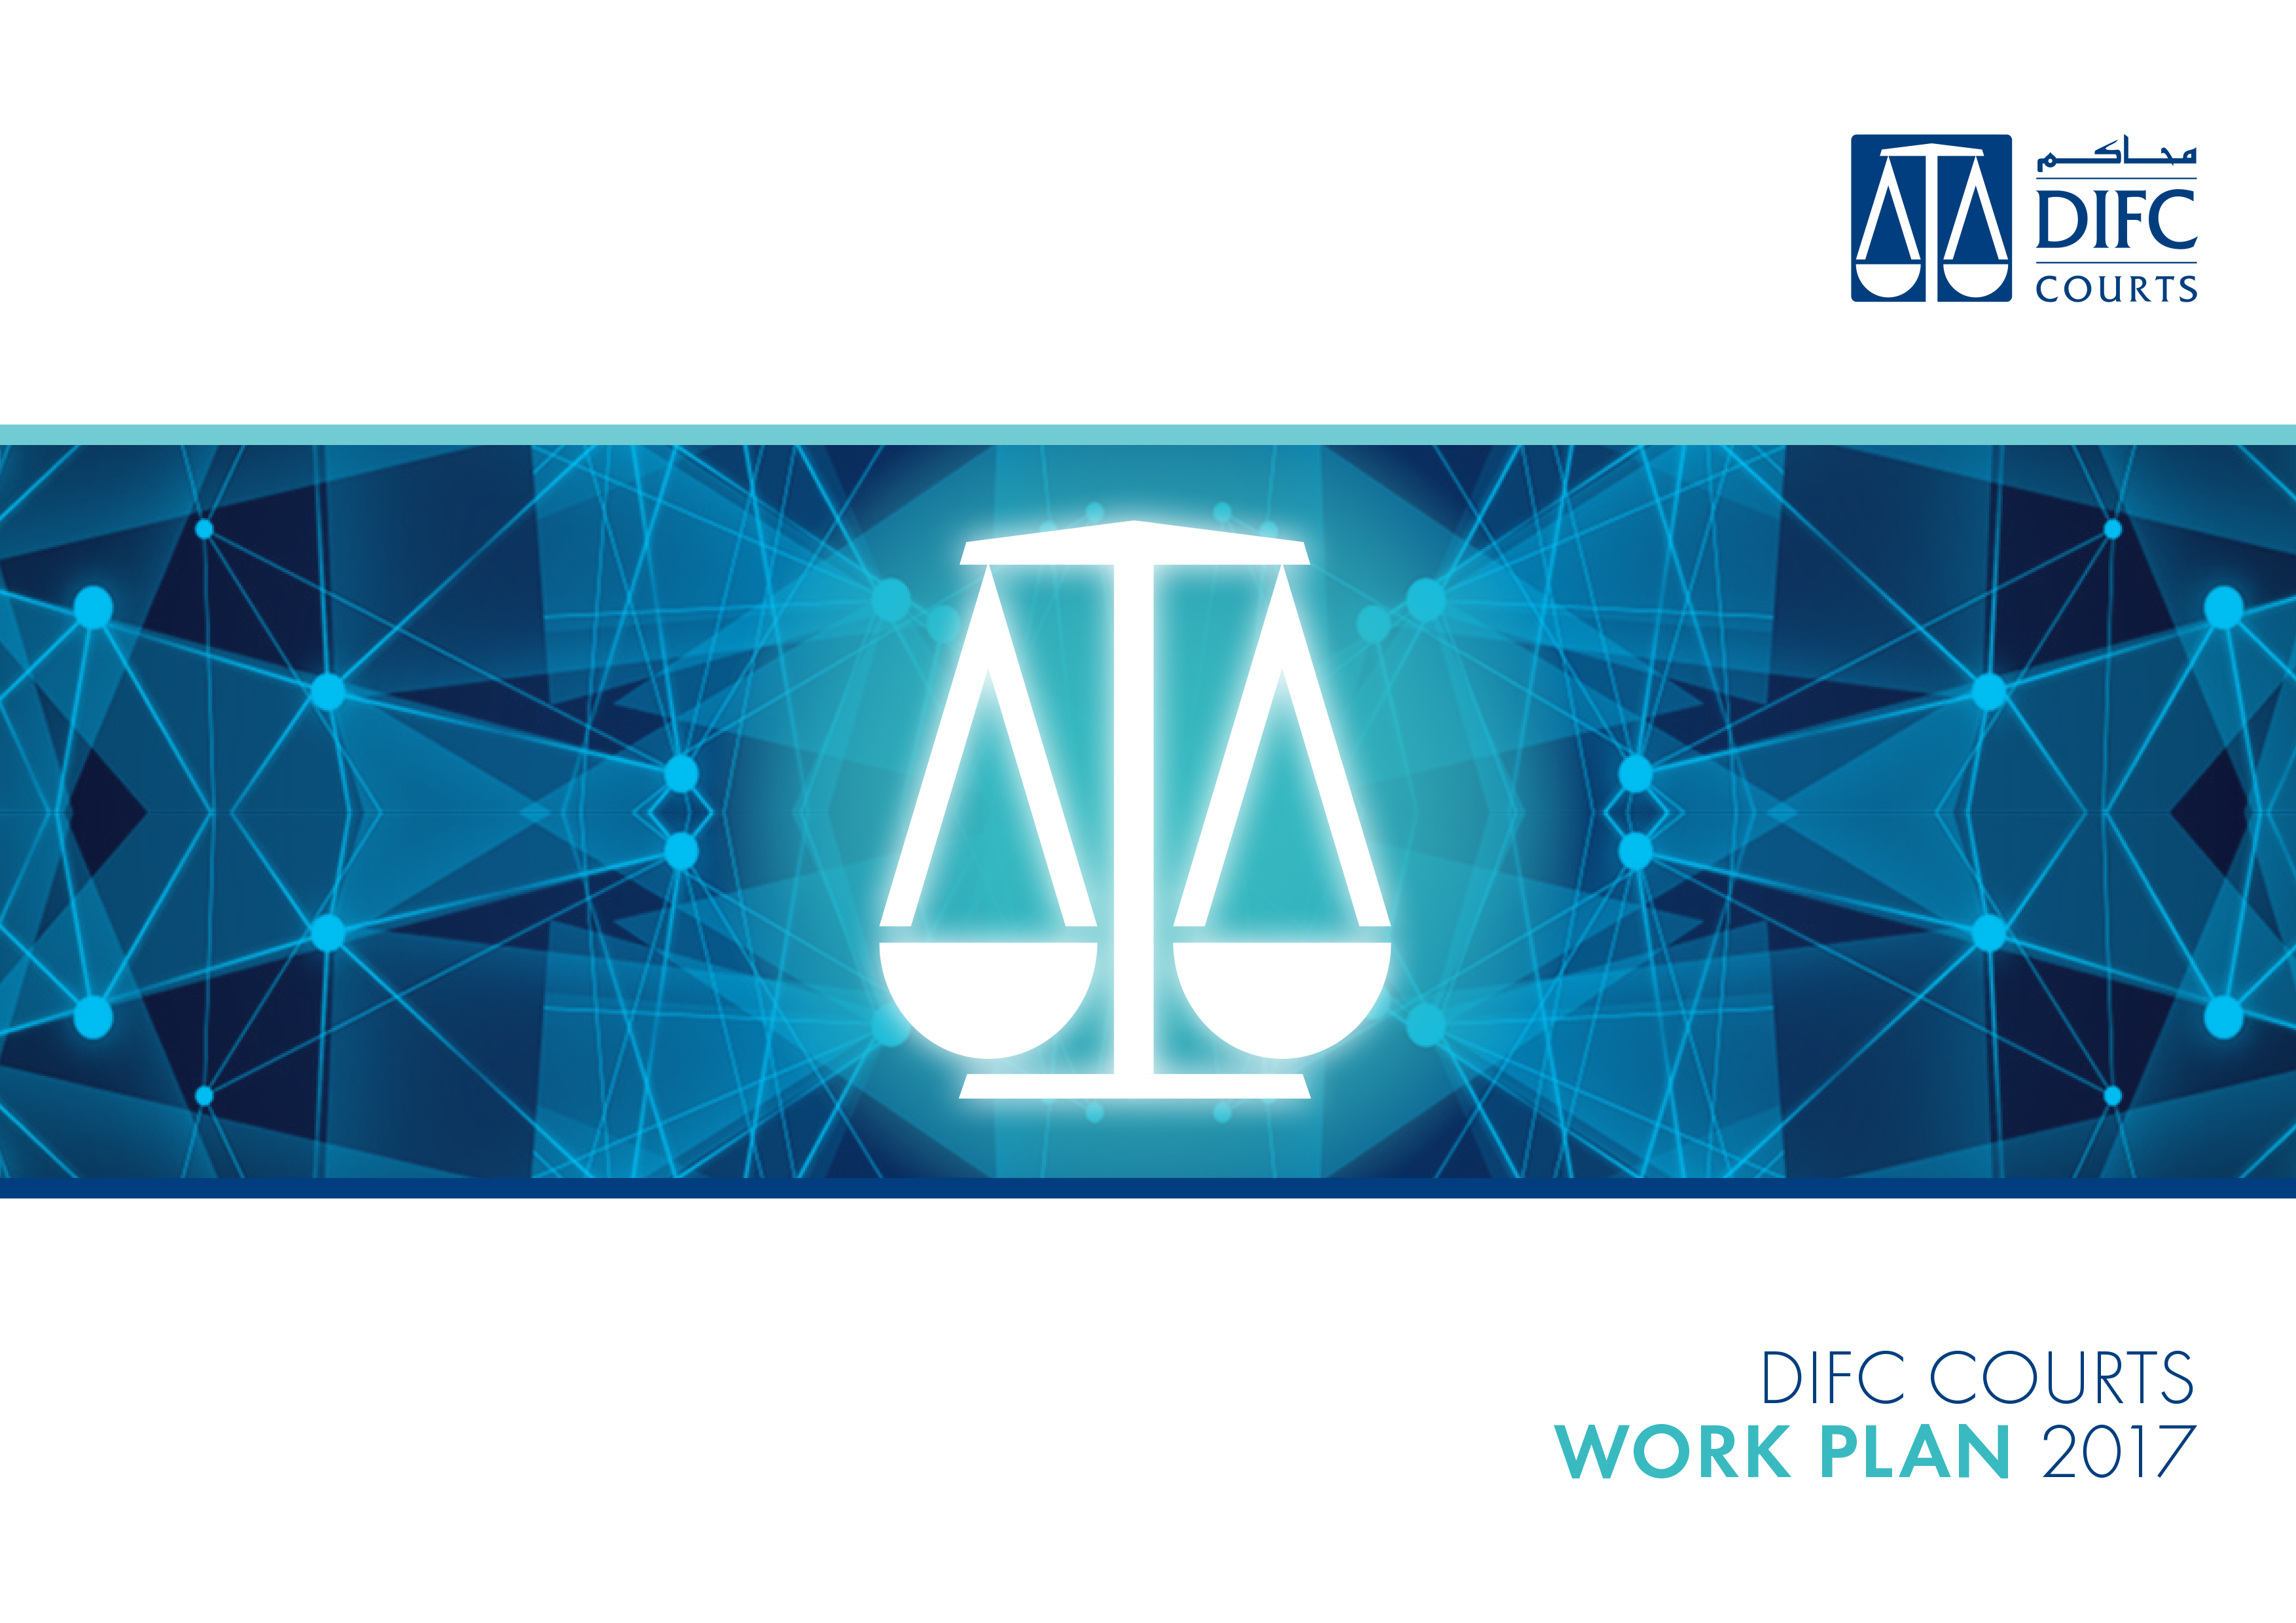 DIFC Courts Work Plan 2017